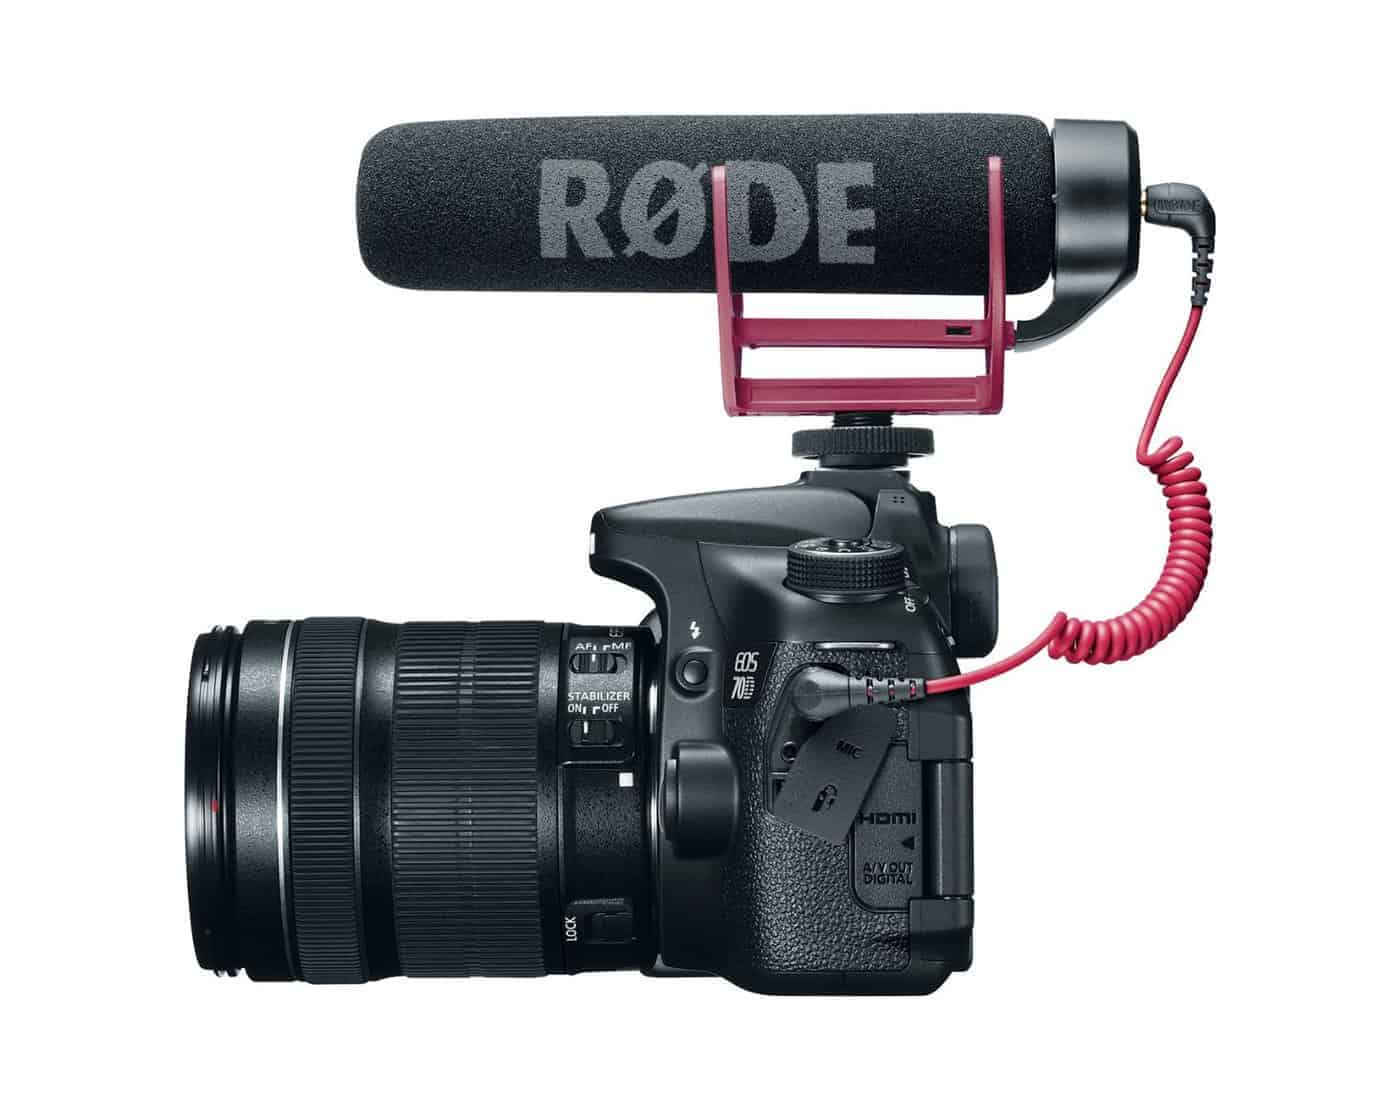 Having a rode mic permanently on your camera doesn't look too bulky, however it does add a 'professional' element to it, which may attract more people to look at him in public